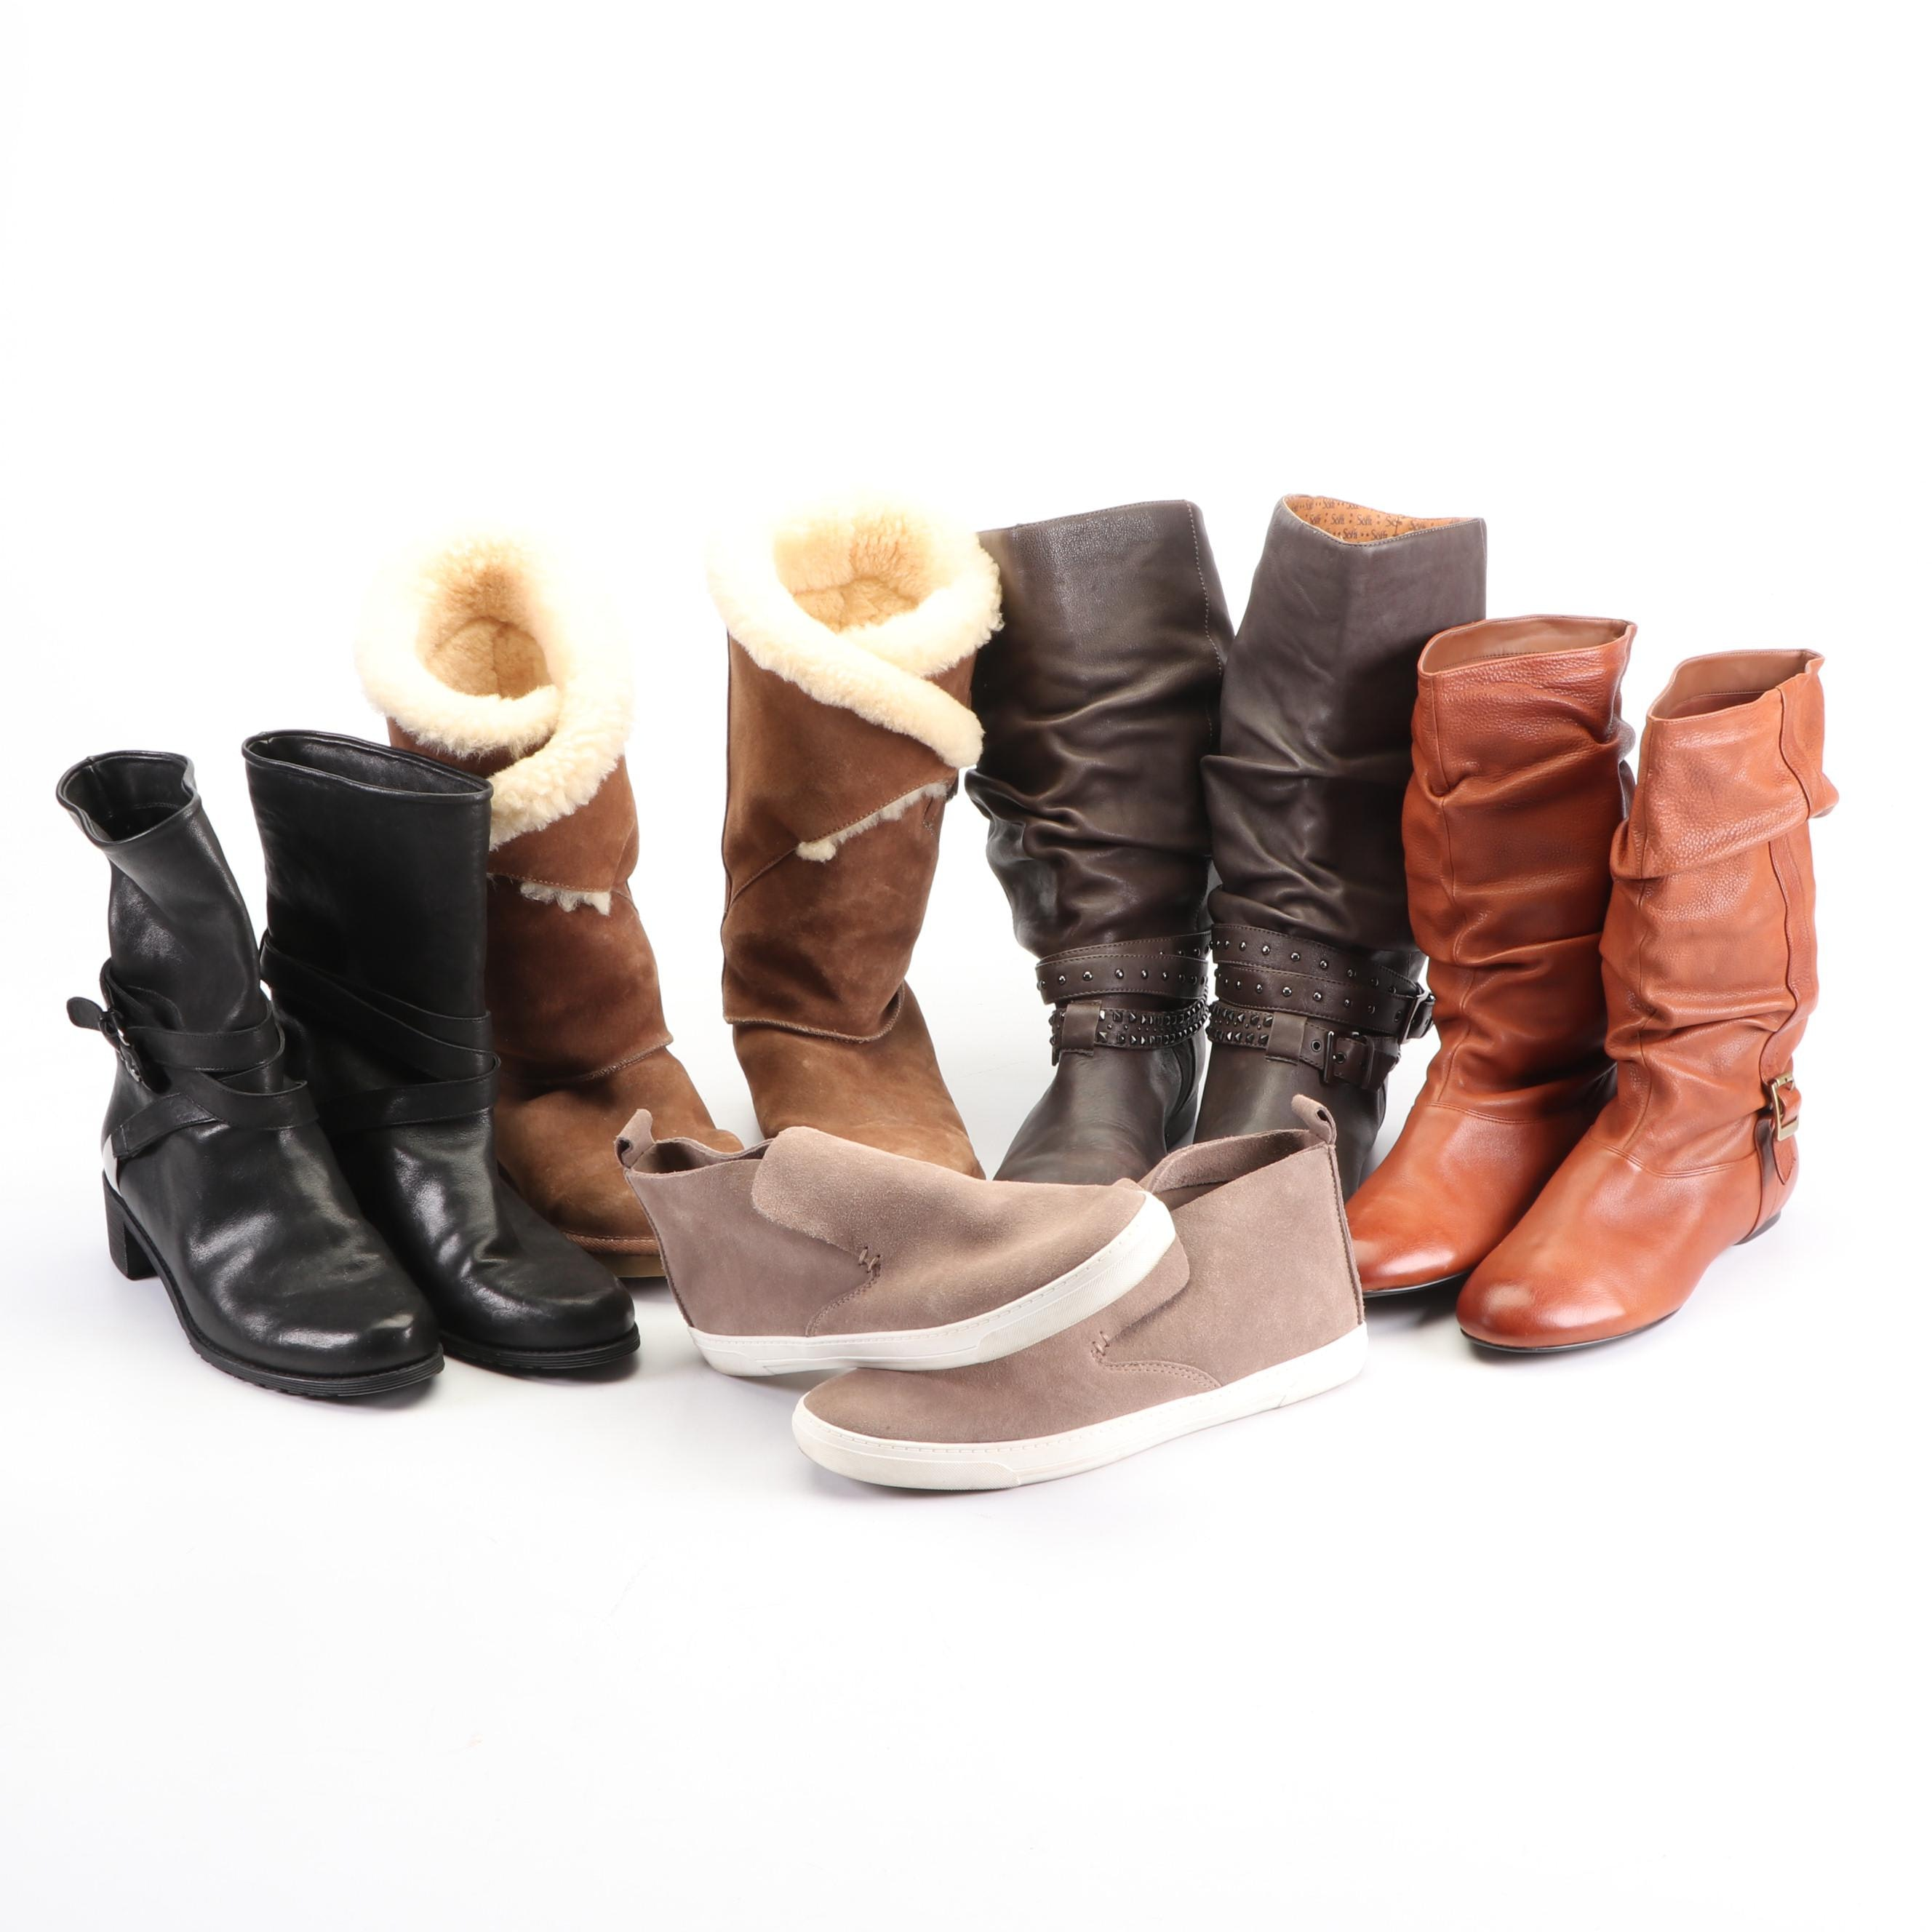 Collection of Women's Leather Boots Including Stuart Weitzman and UGG